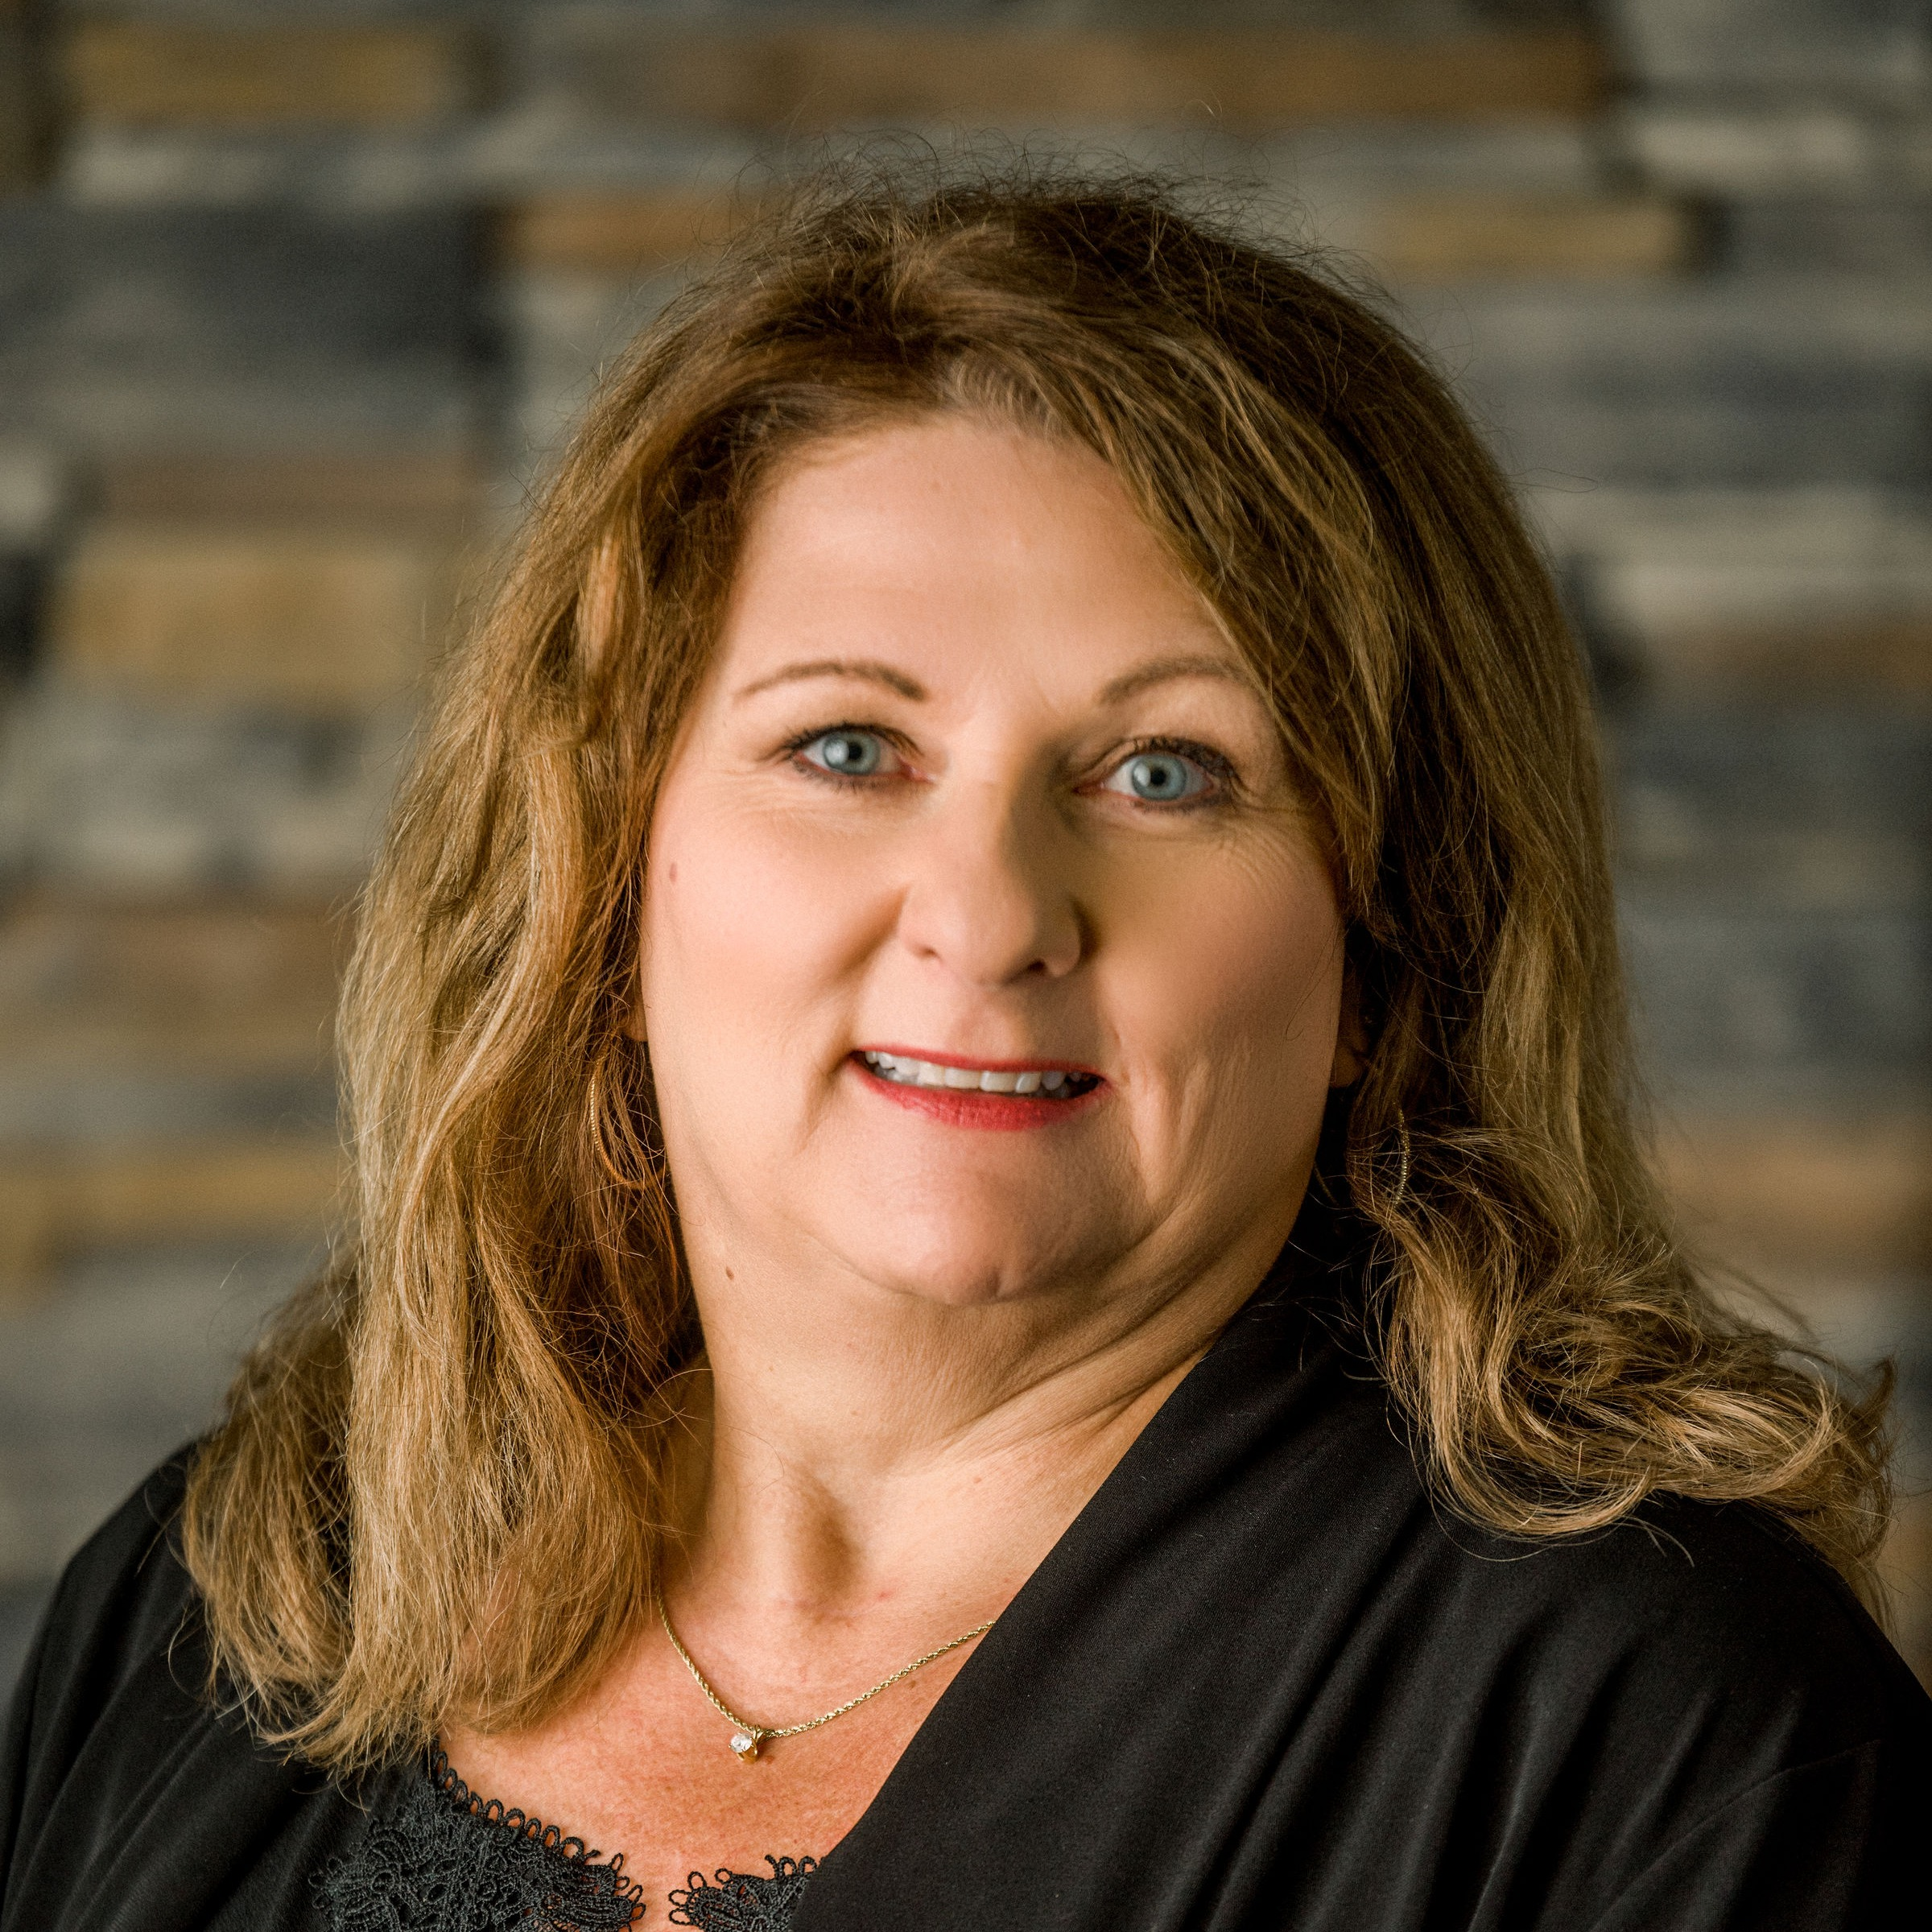 Becky W. of Orthodontic Specialty Services